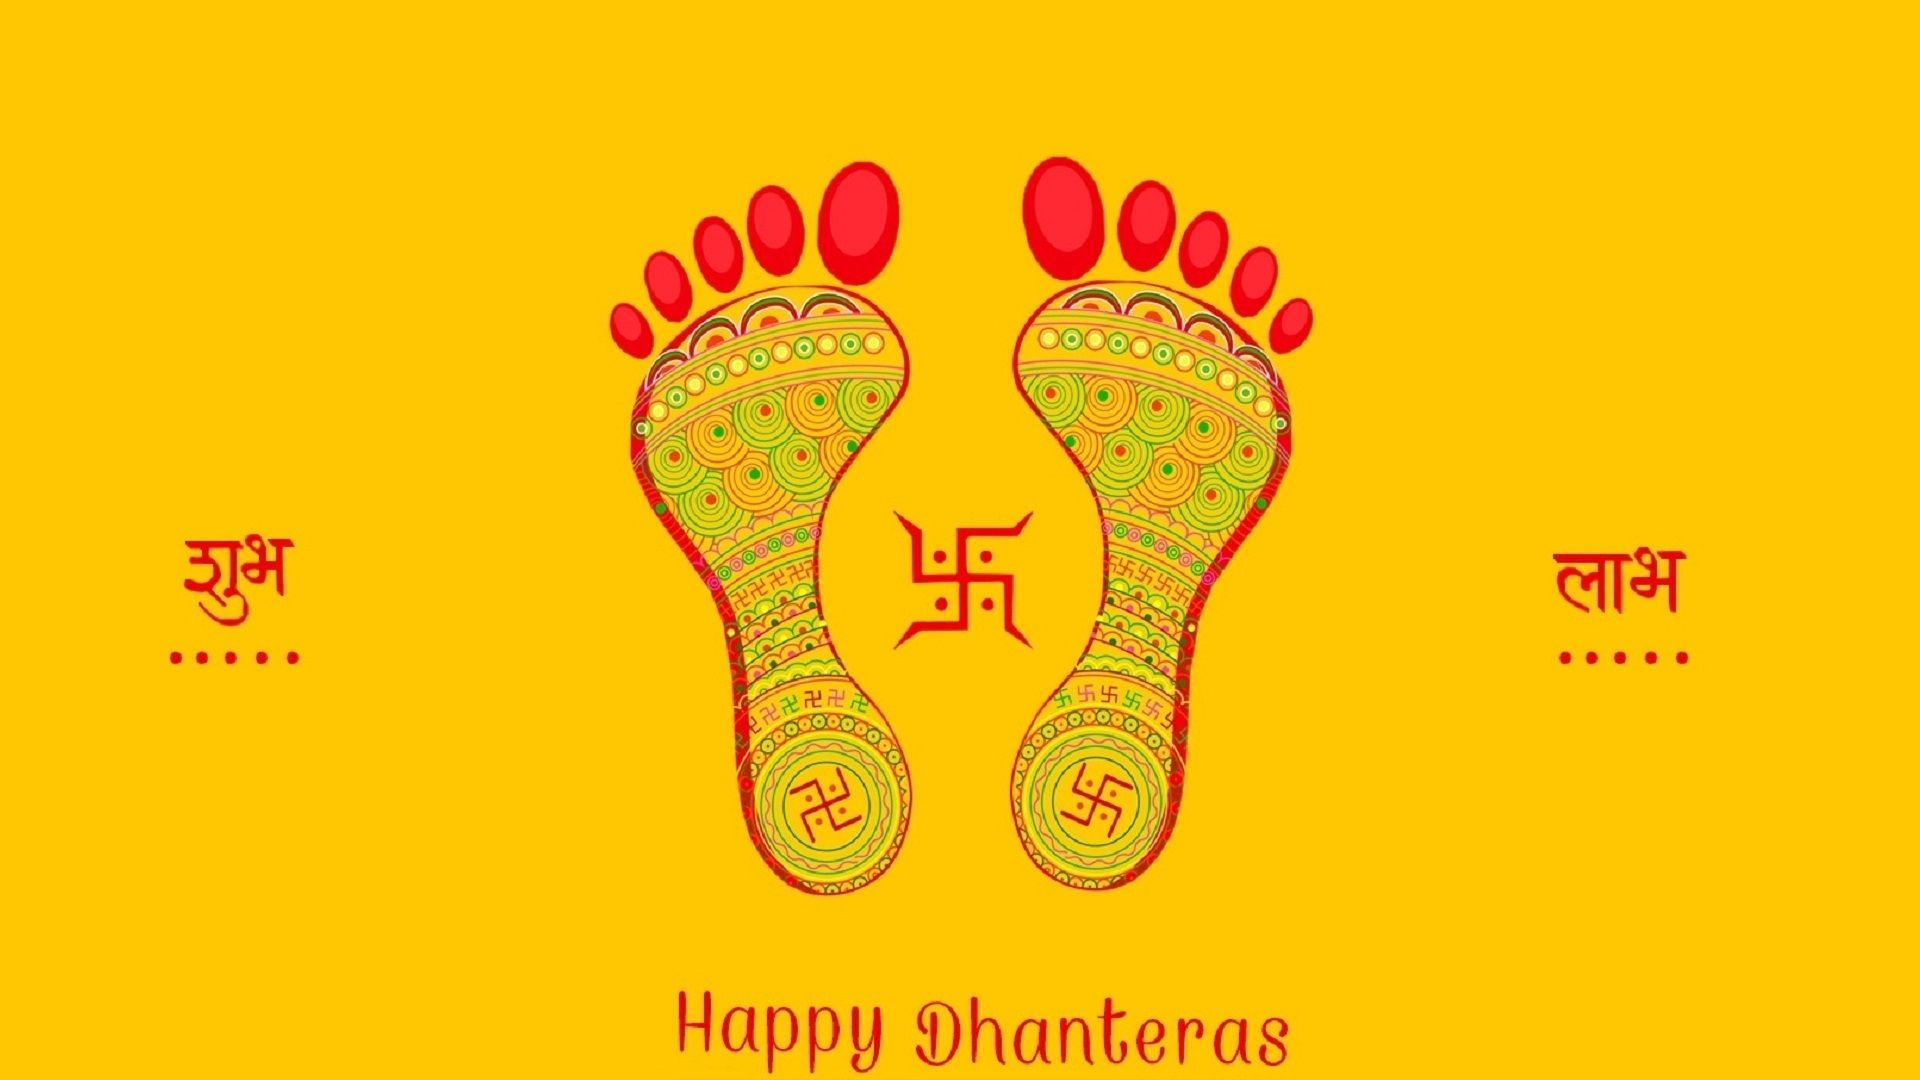 May This Festival Of Wealth Dhanteras Fullfill Lots Of Wealth And